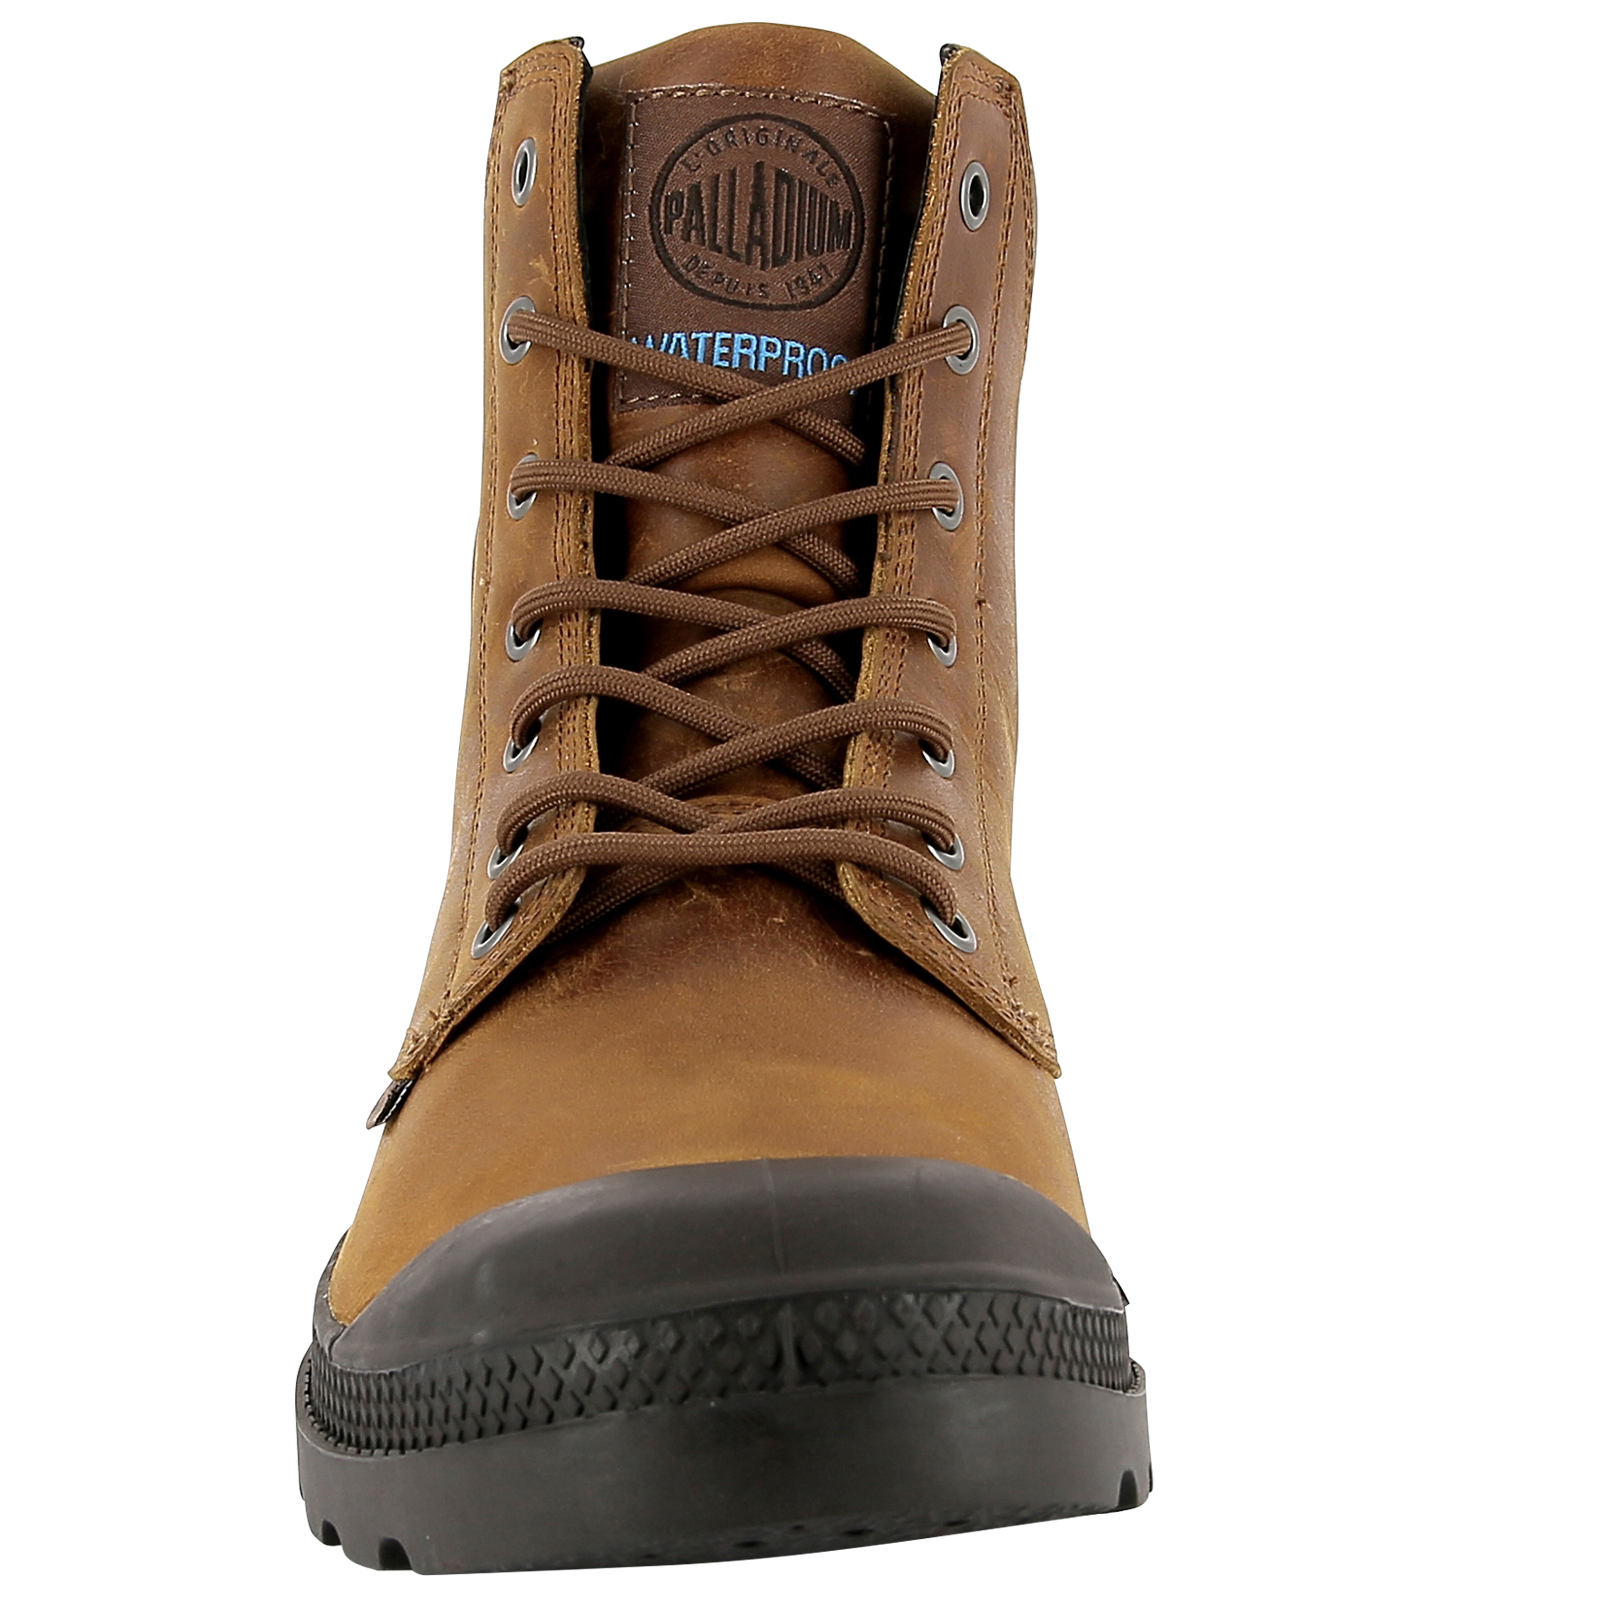 Palladium-Mens-Pampa-Cuff-Lux-Designer-Waterproof-Leather-Walking-Boots-Shoes thumbnail 25